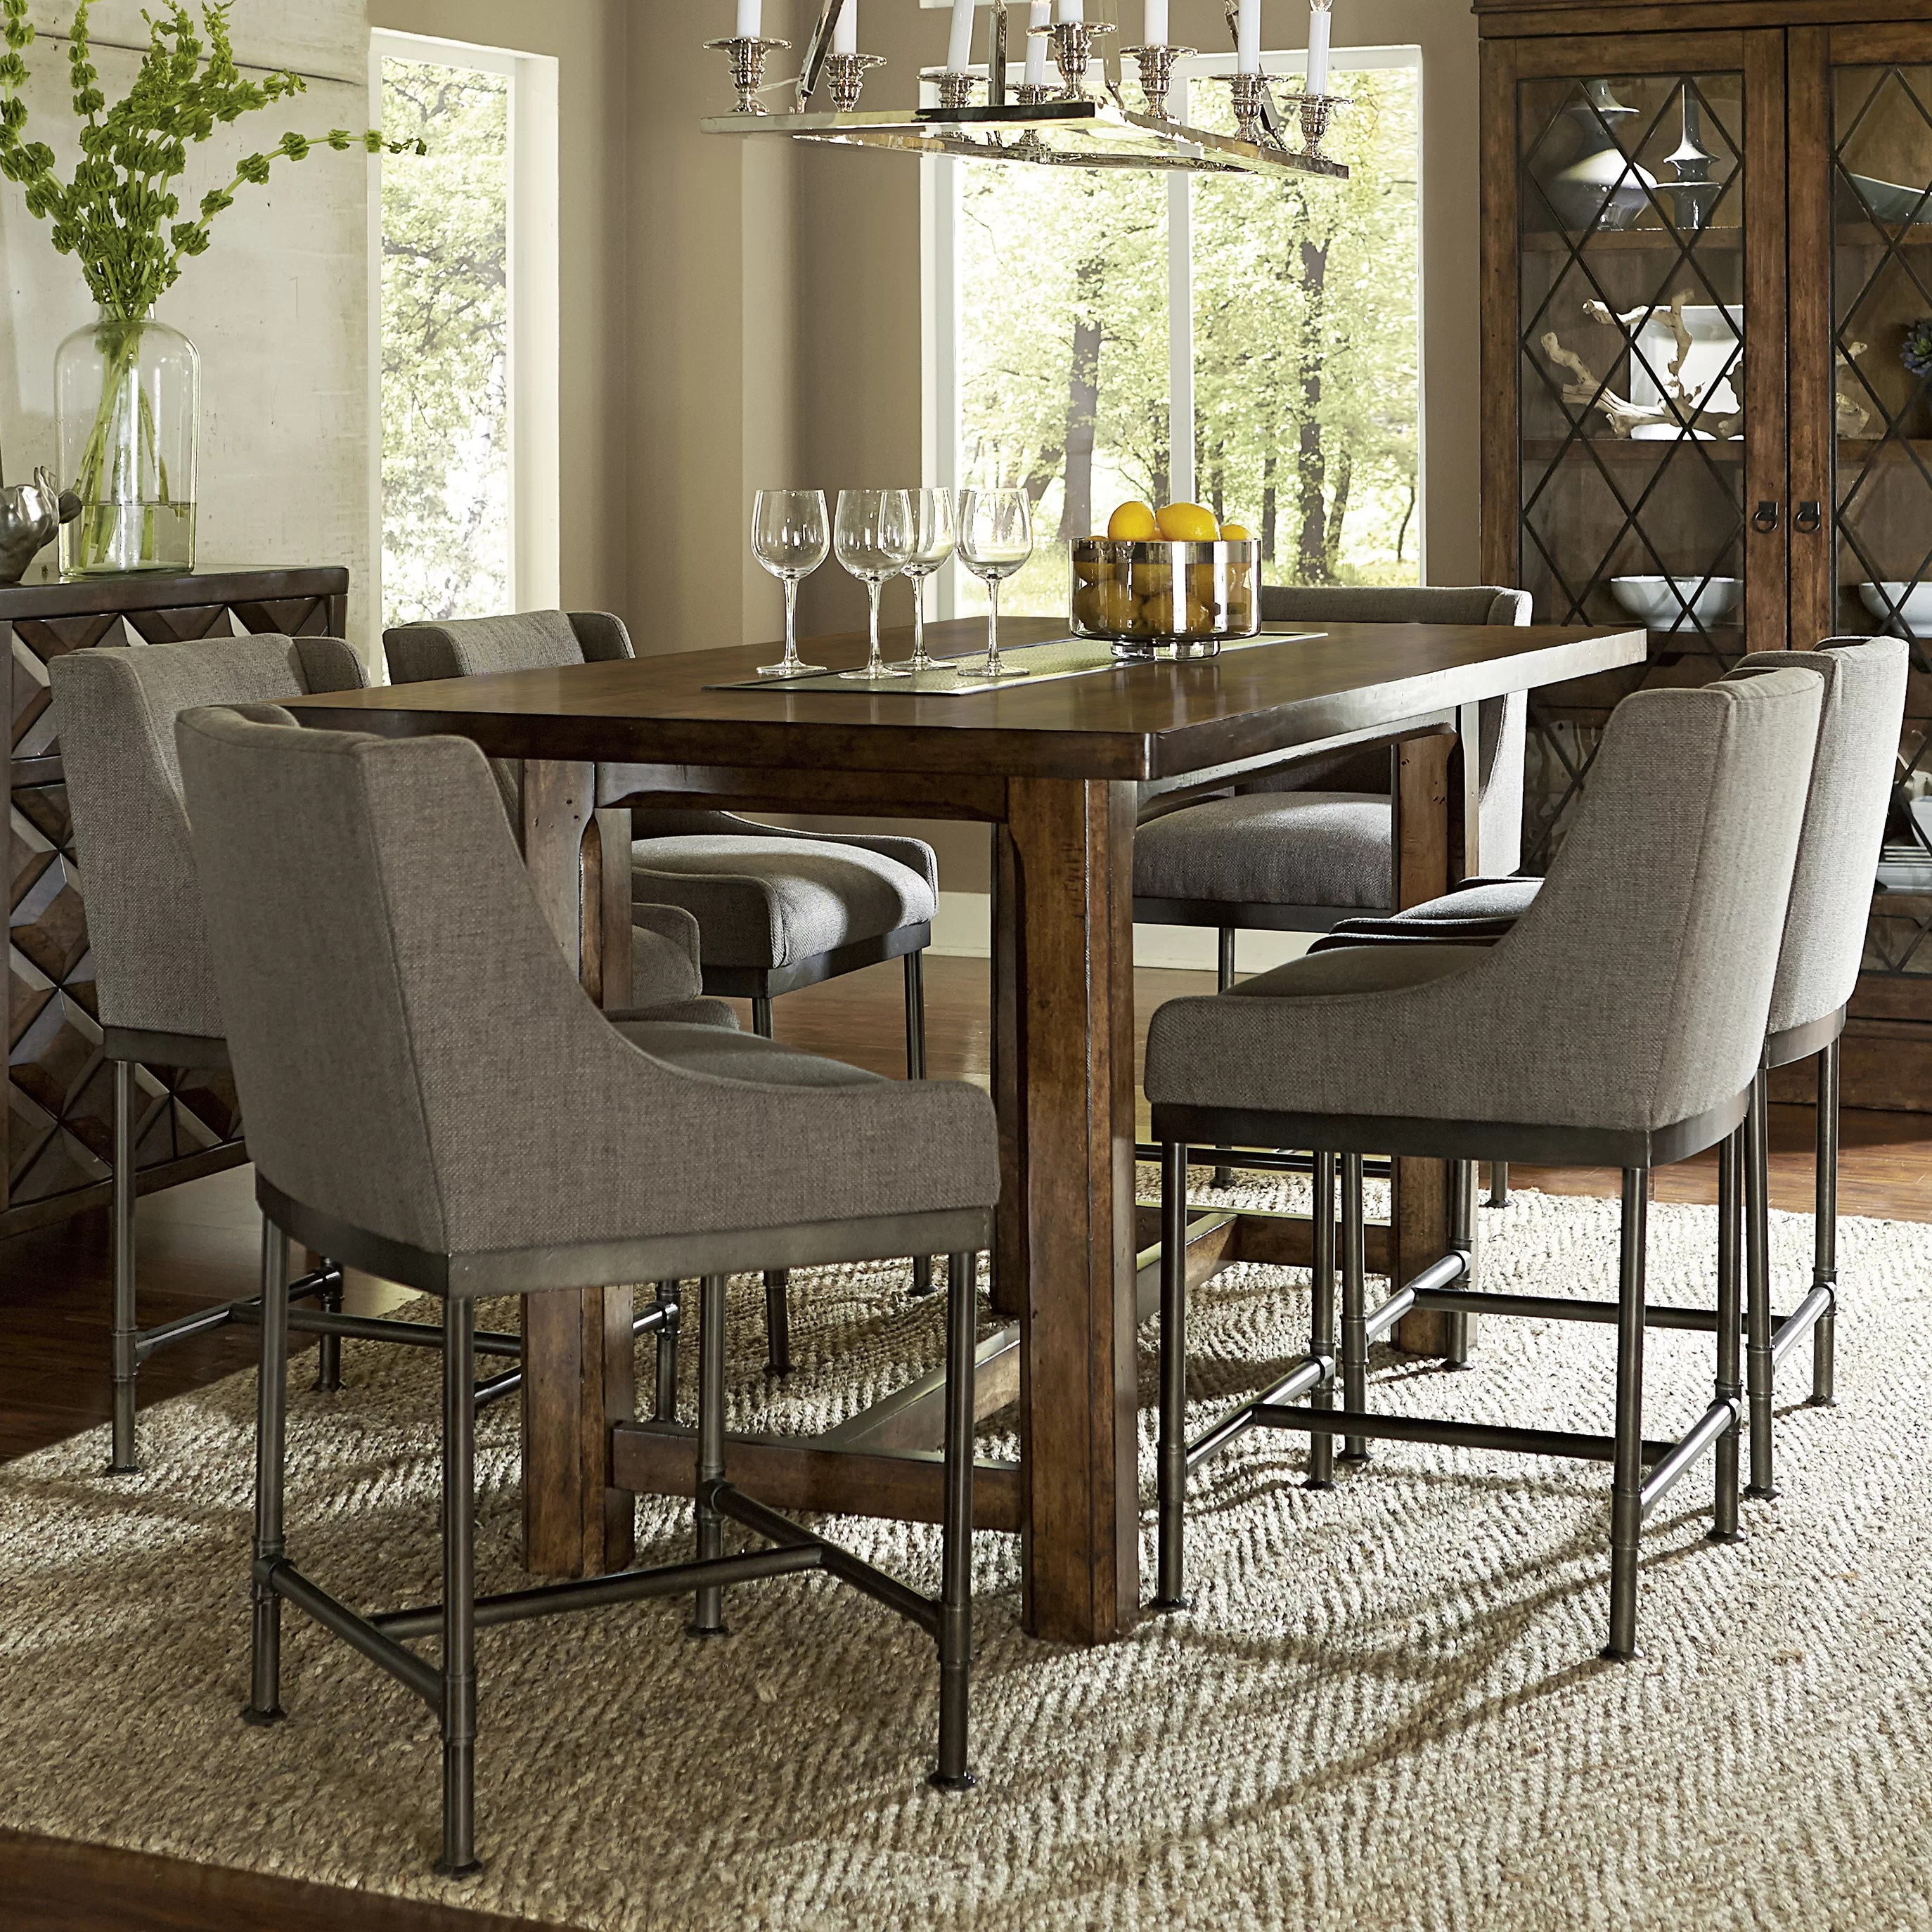 counter height kitchen tables cliff kitchen counter height kitchen table Segula Counter Height Dining Table Allmodern